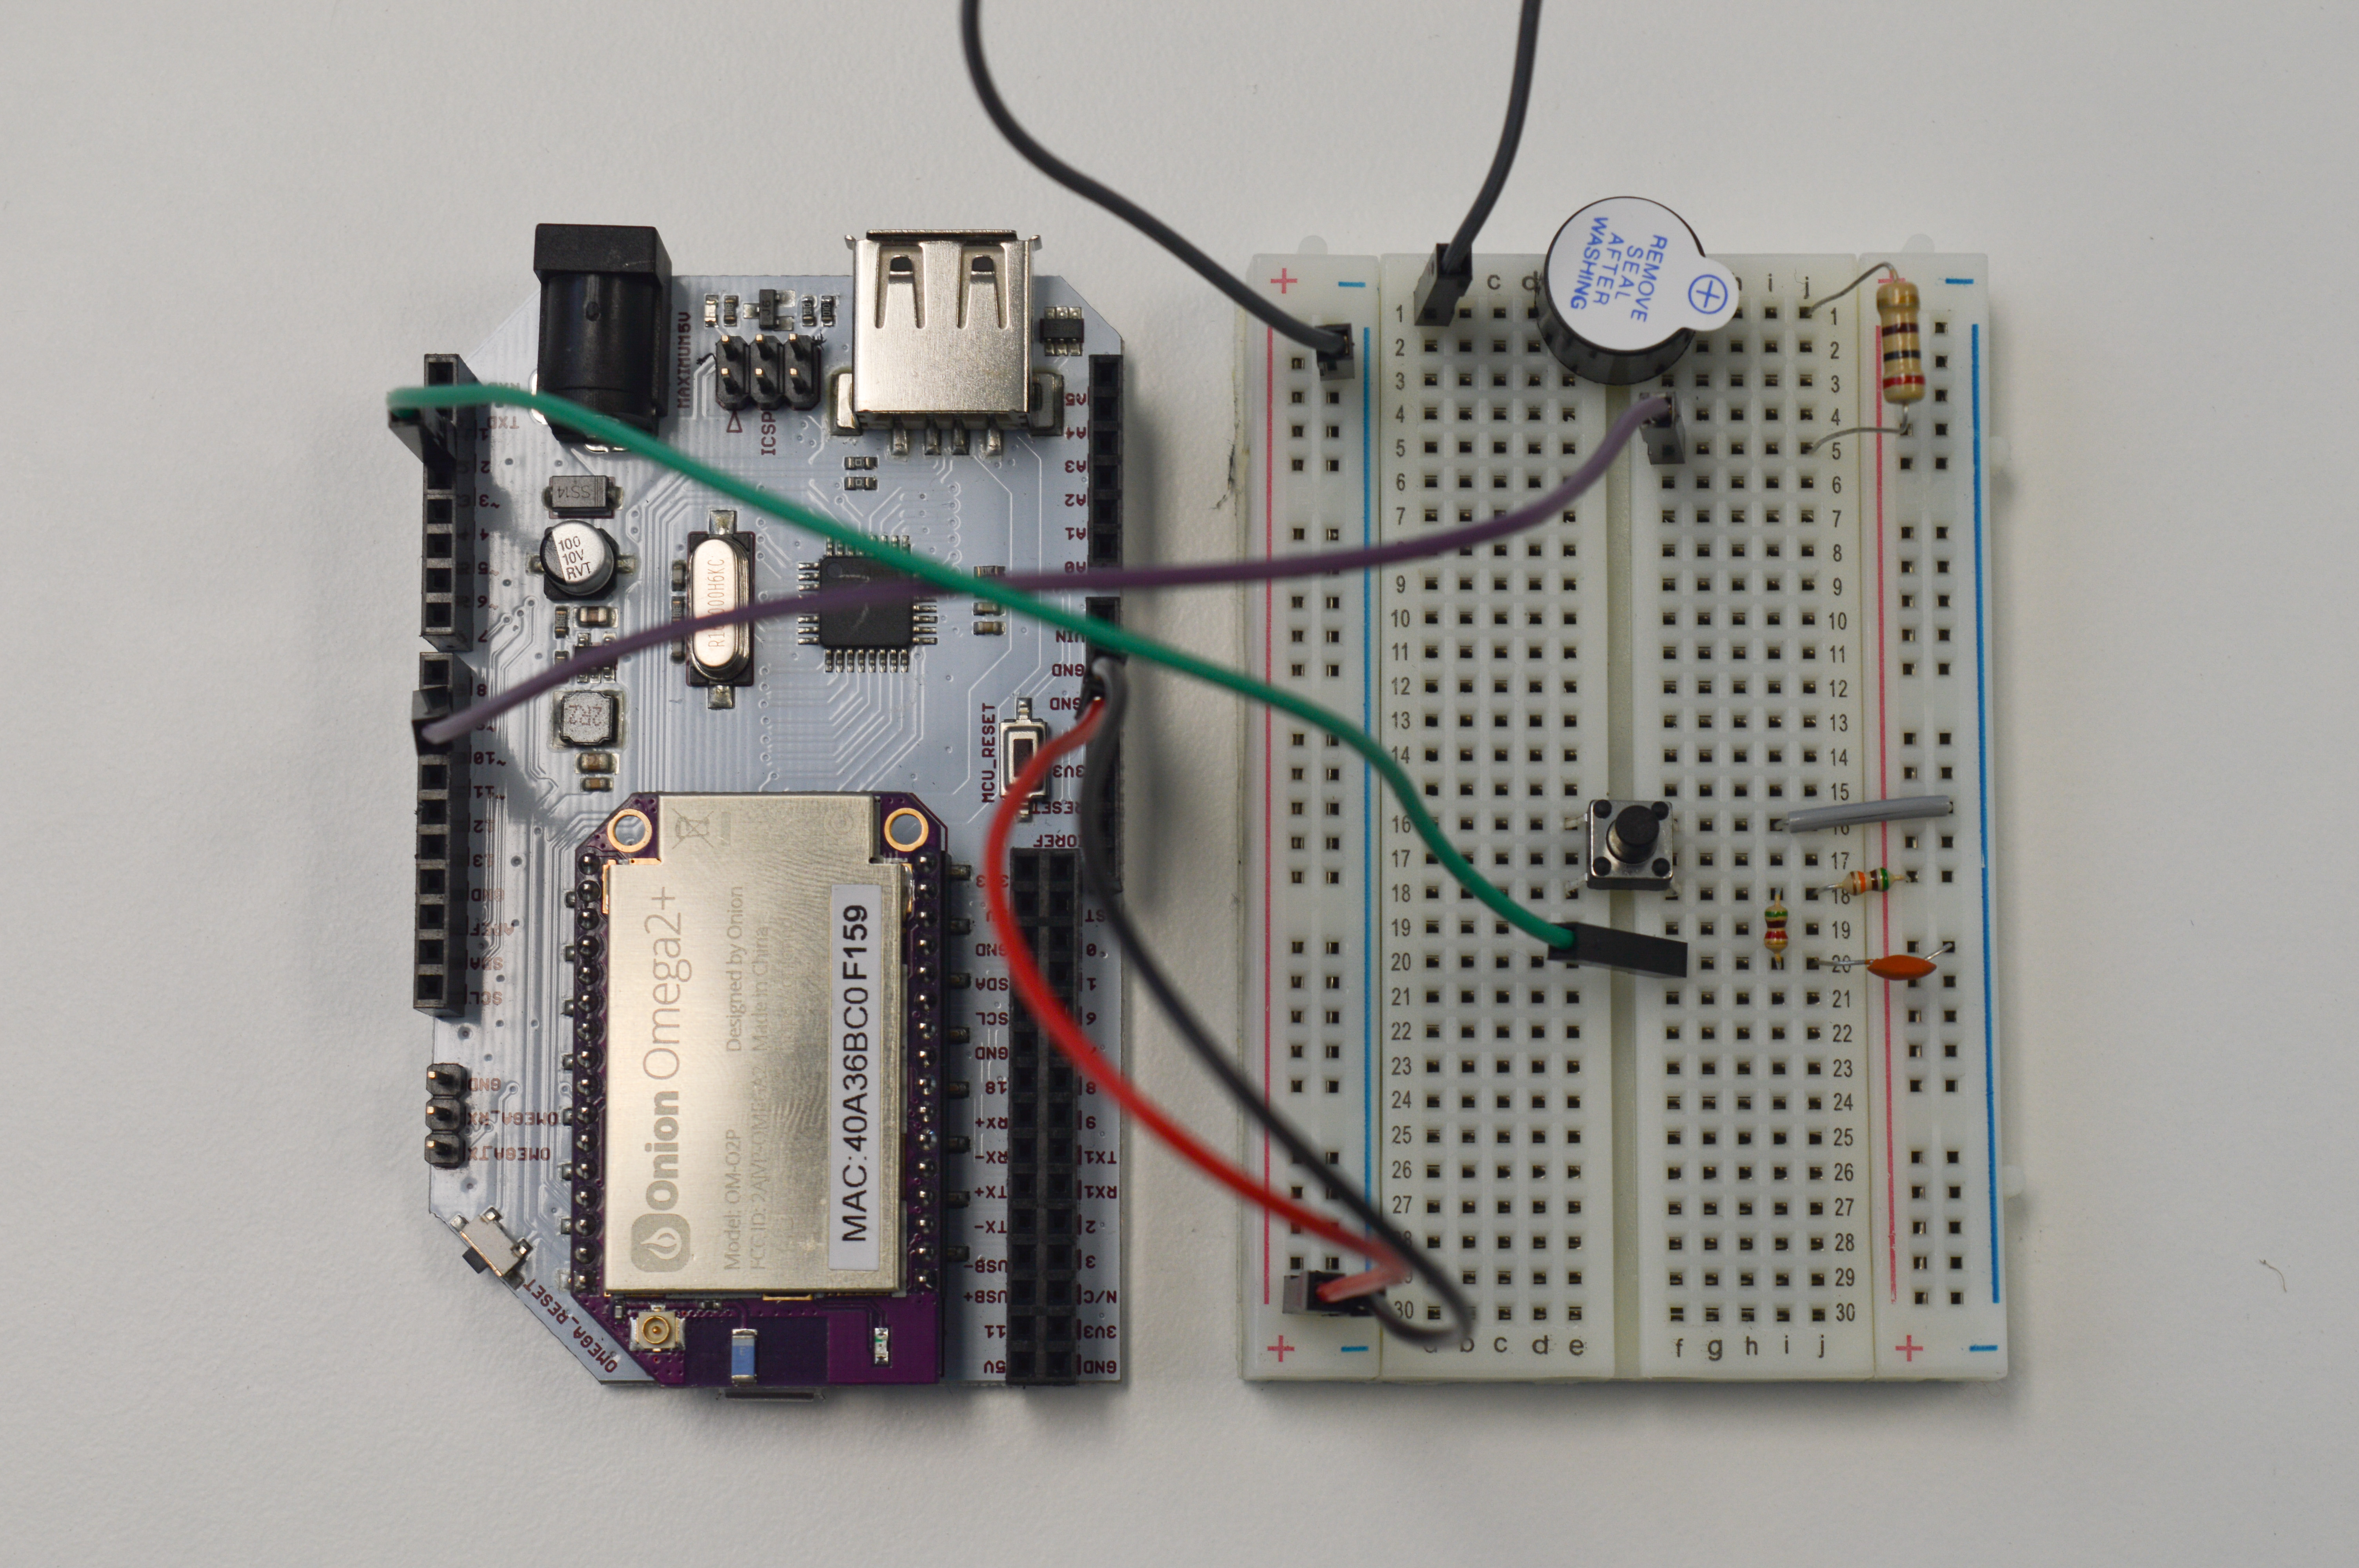 The buzzer and button connected to the Arduino Dock